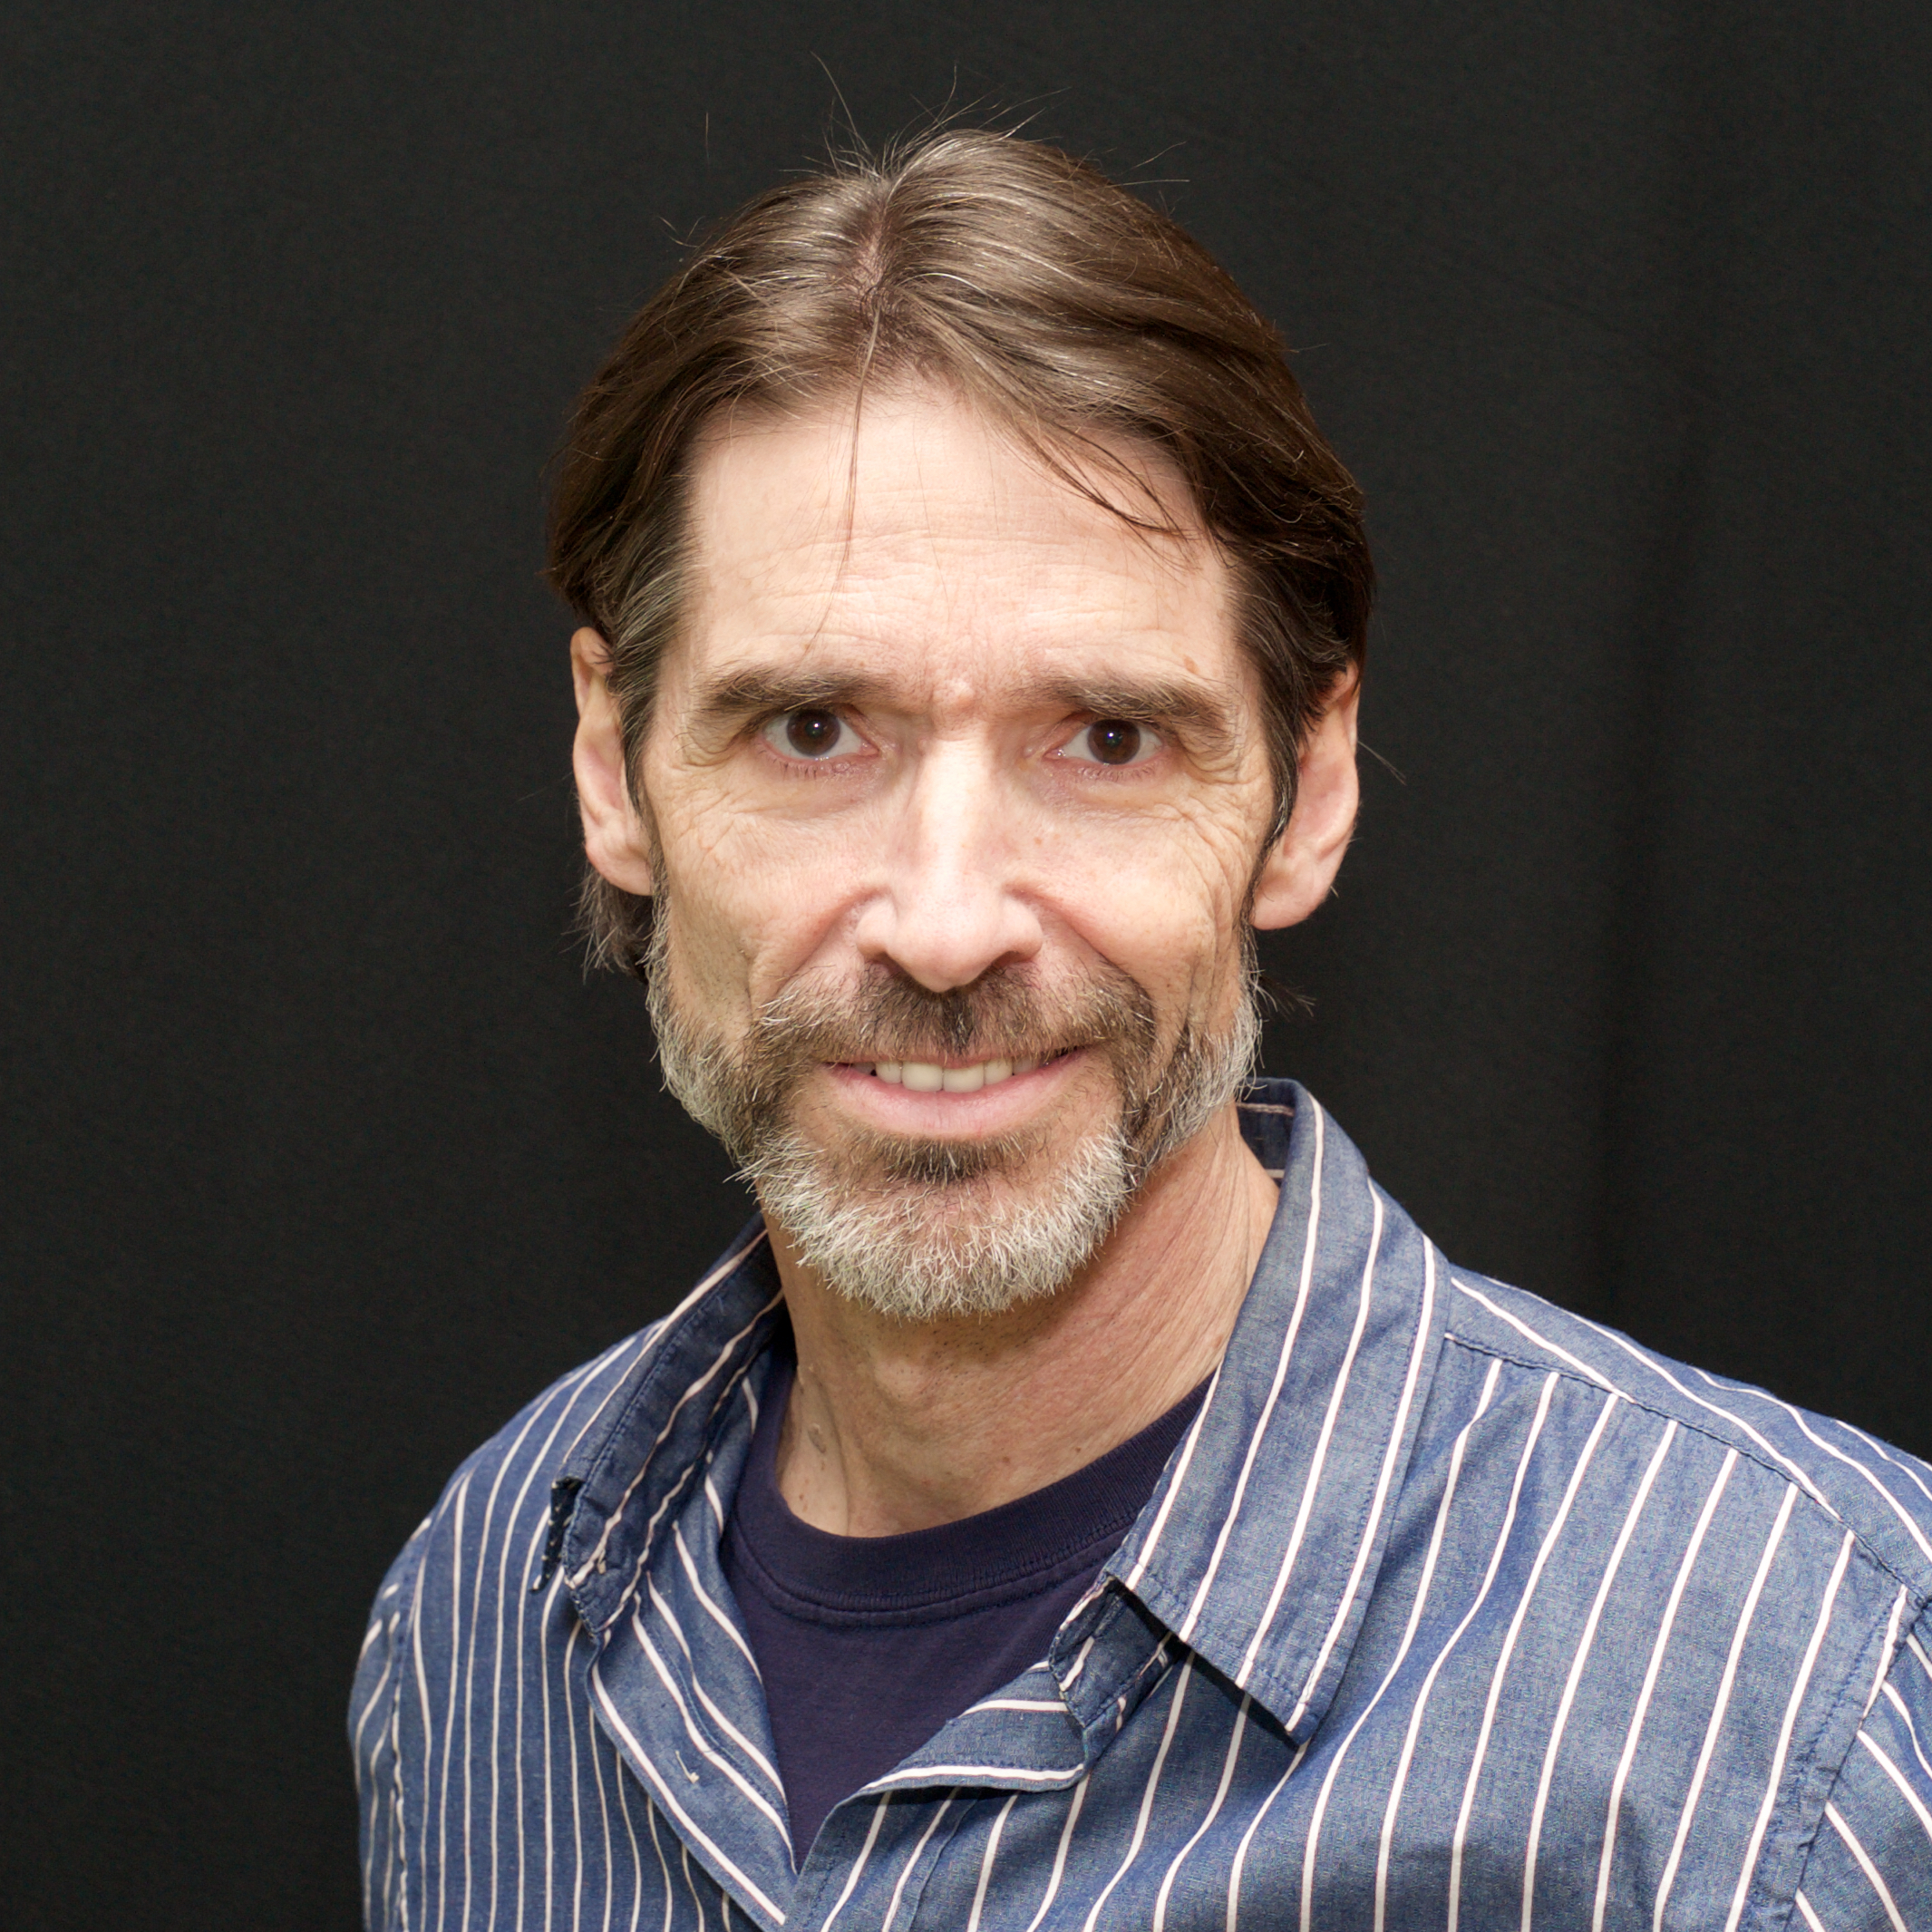 John SettleBen - John has been performing in amateur theatre since 1998. This is John's fourth time on stage with Theatre Wellesley. He previously appeared as Burt Evans in Cocktails with Mimi in 2015, David in Second Time Around in 2016 and Mitch Albom in Tuesdays with Morrie in 2017. John is thoroughly enjoying playing Ben in Willow Quartet because of the emotional depth of the script and the chance to be part of such a great cast and crew.